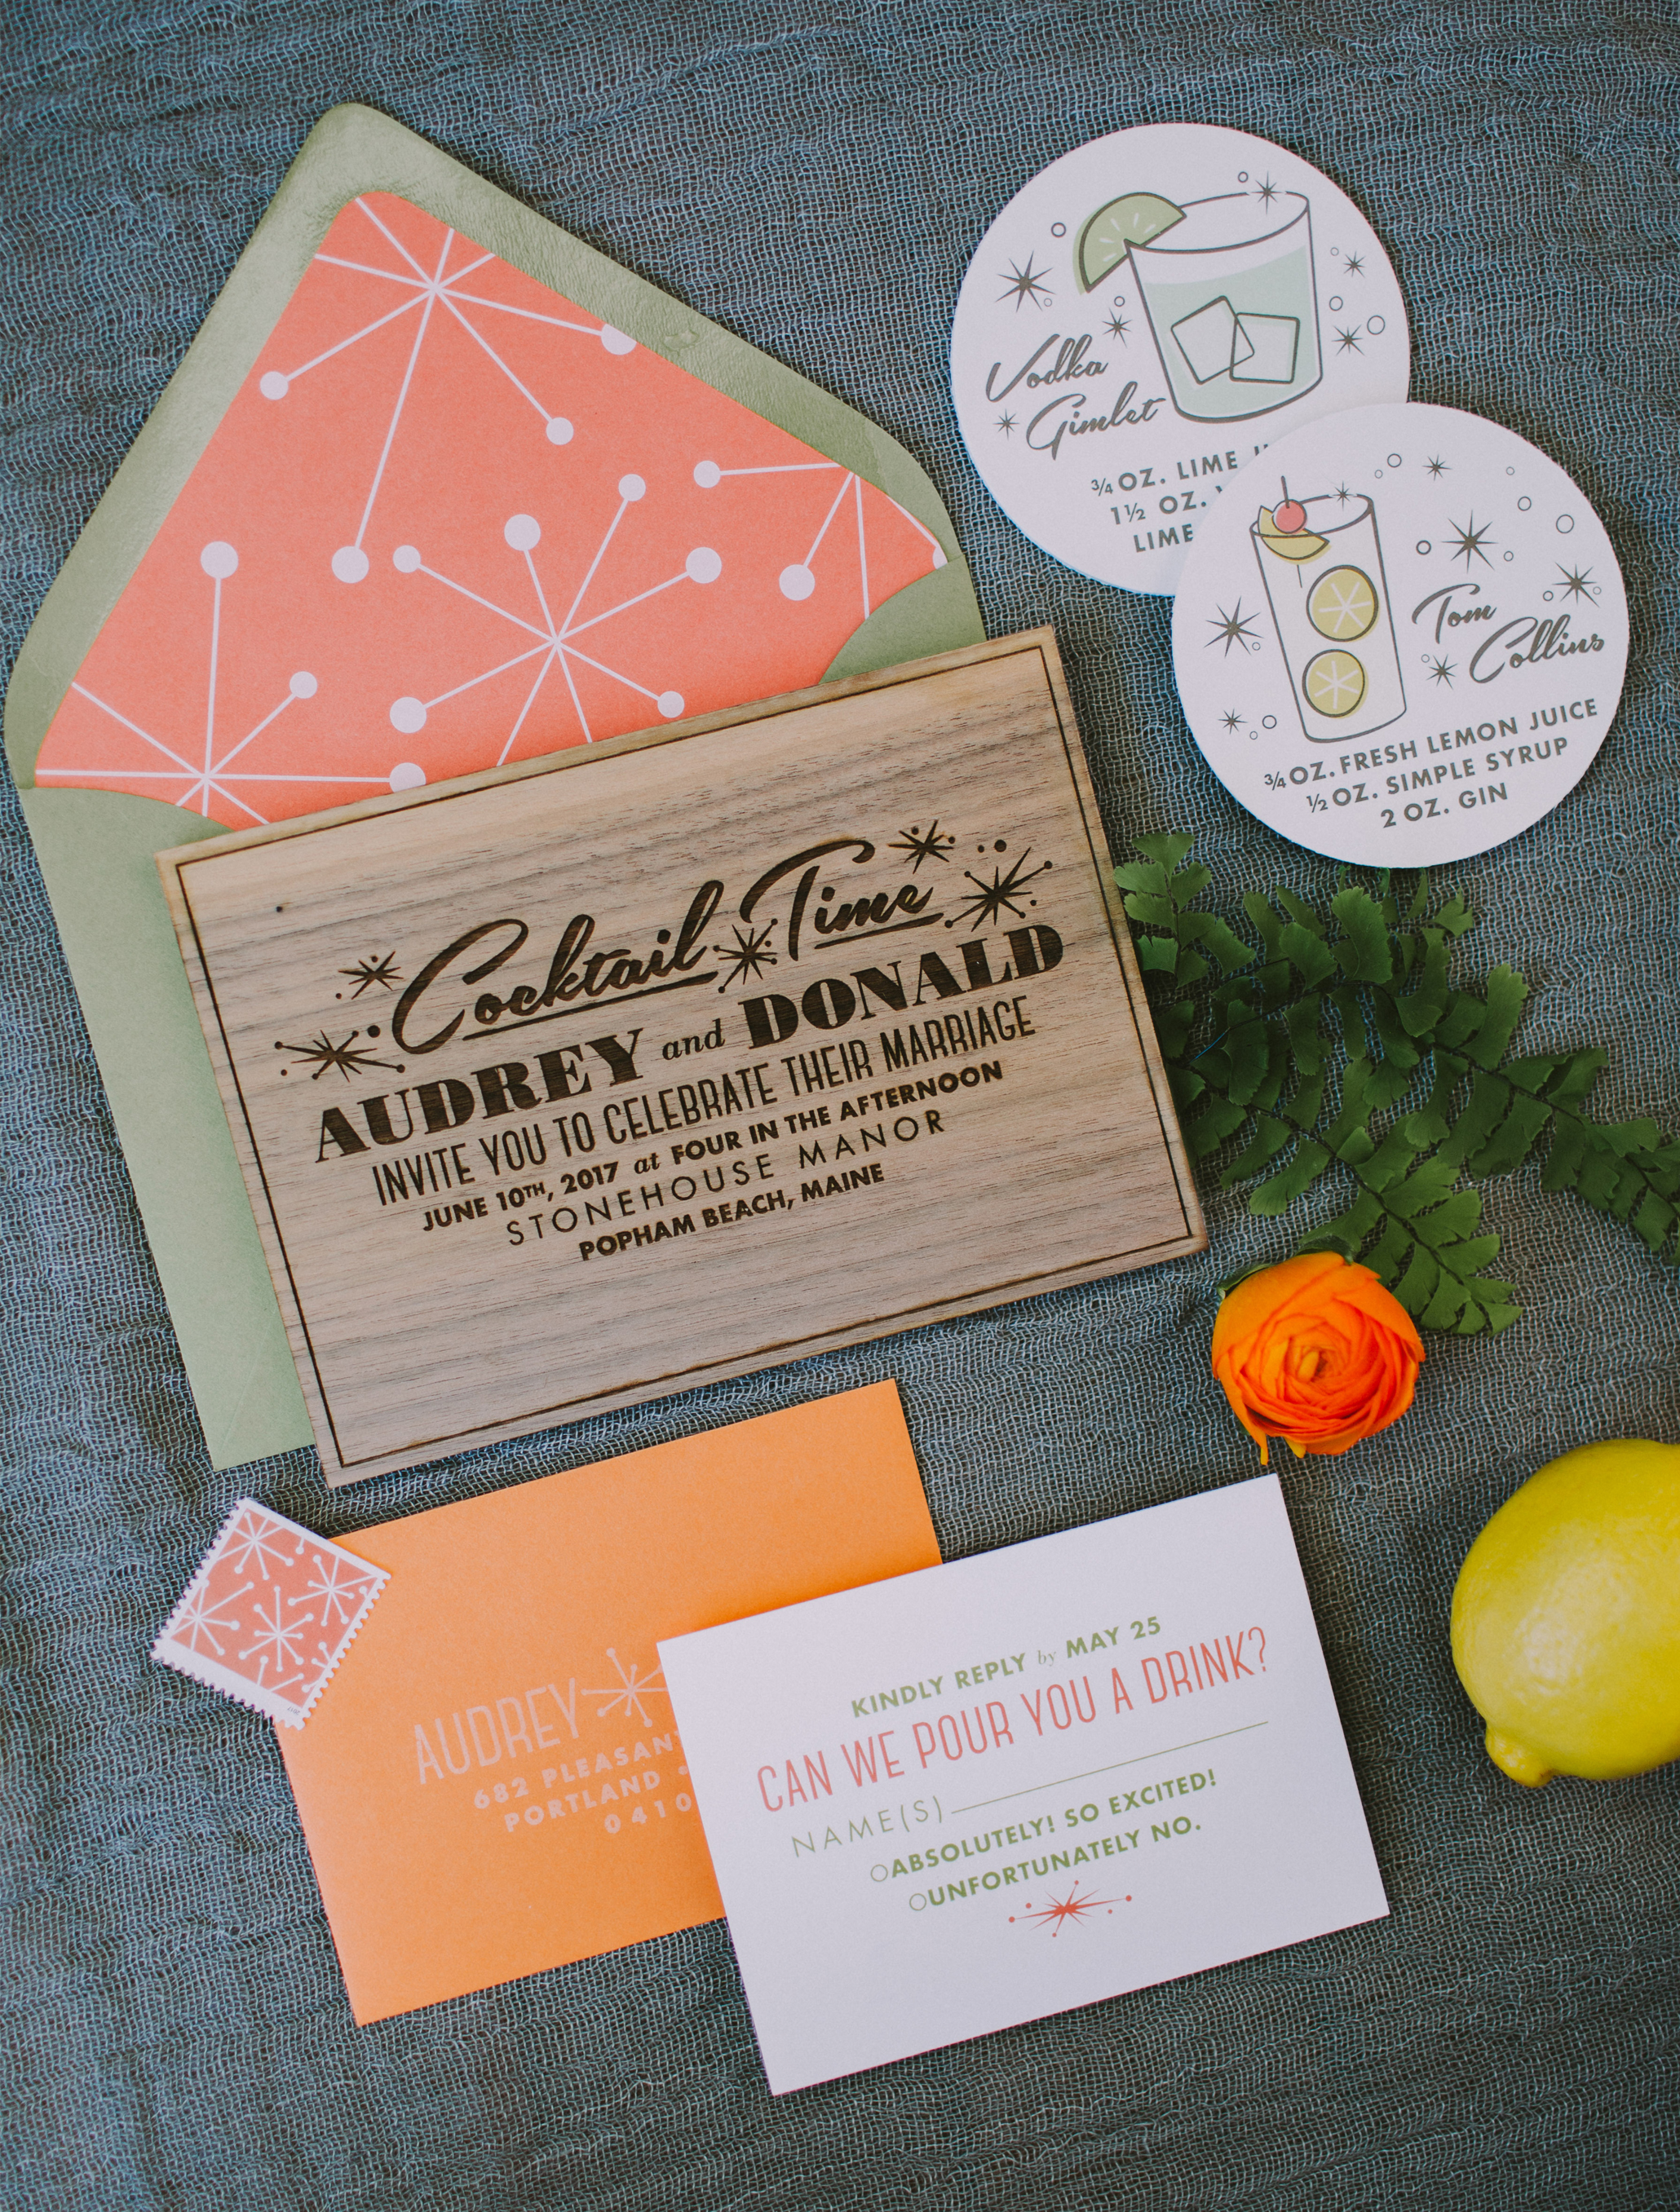 mid-century modern wedding invitation, custom design, modern Palm Springs, Vegas wedding invitation suite, with matching cocktail stirrers and coasters and napkins